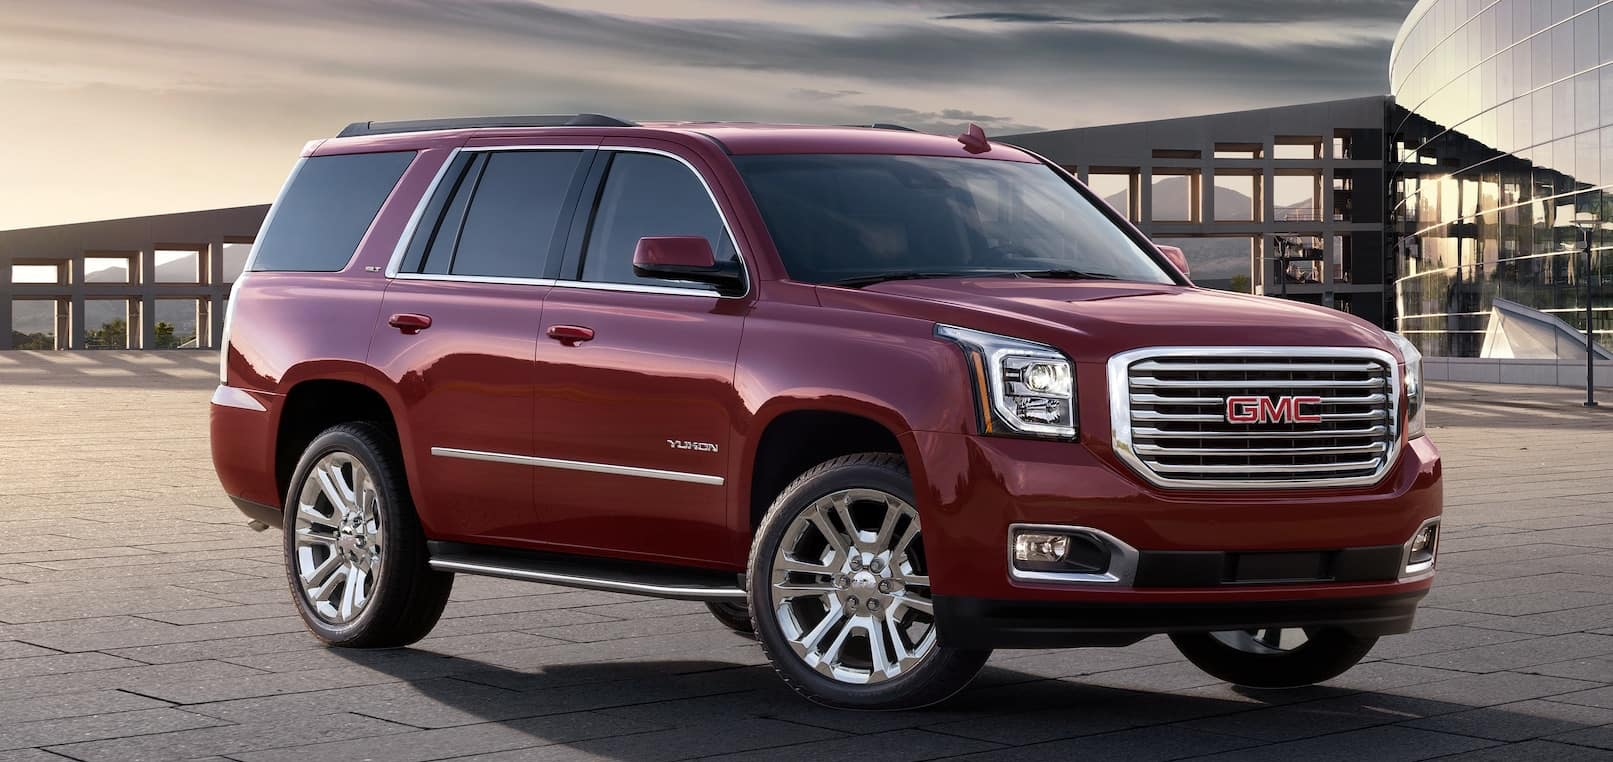 GMC Yukon Dealership